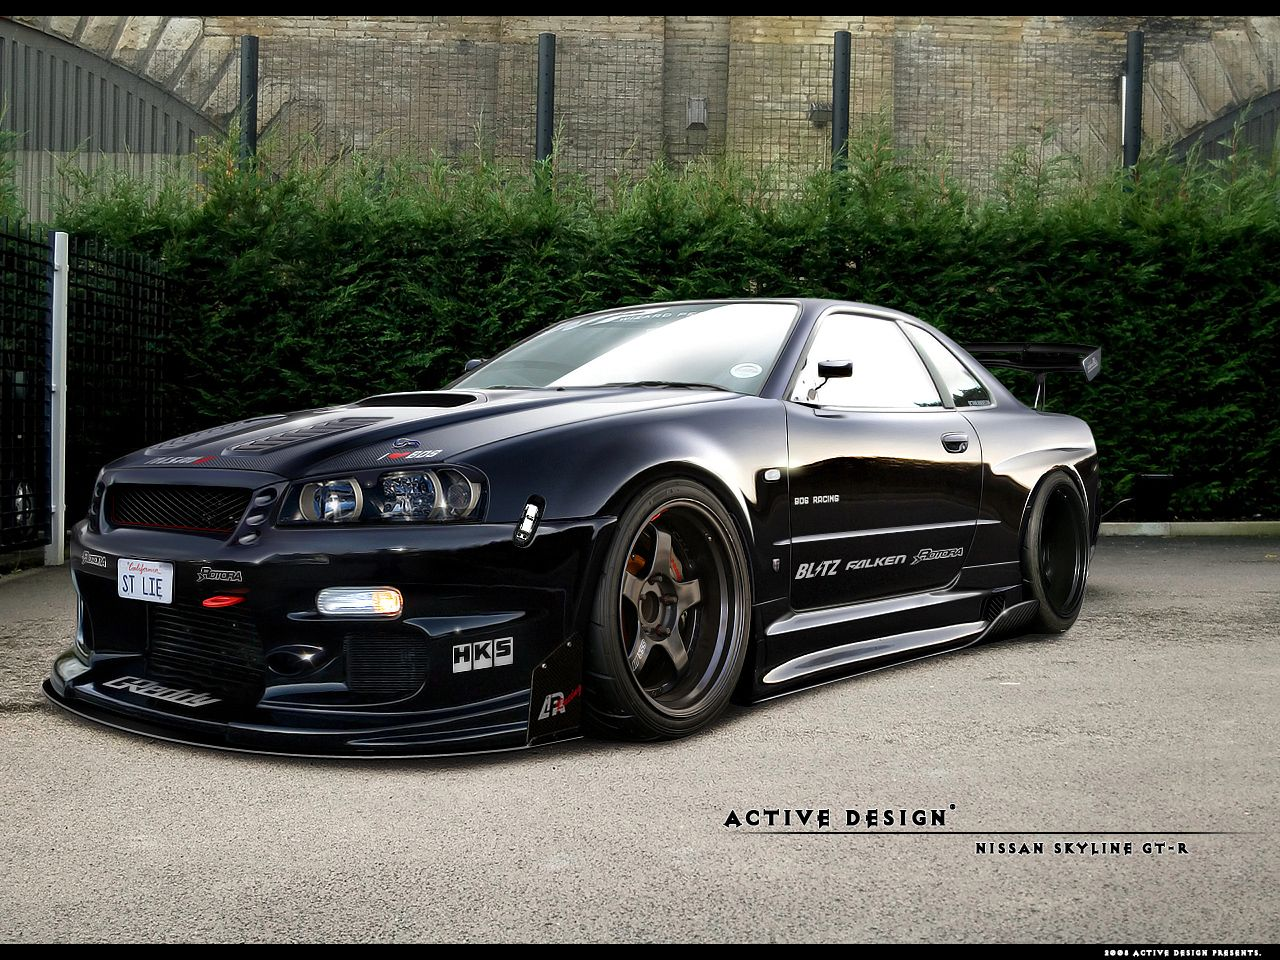 Nissan skyline – what makes it so special through the years?